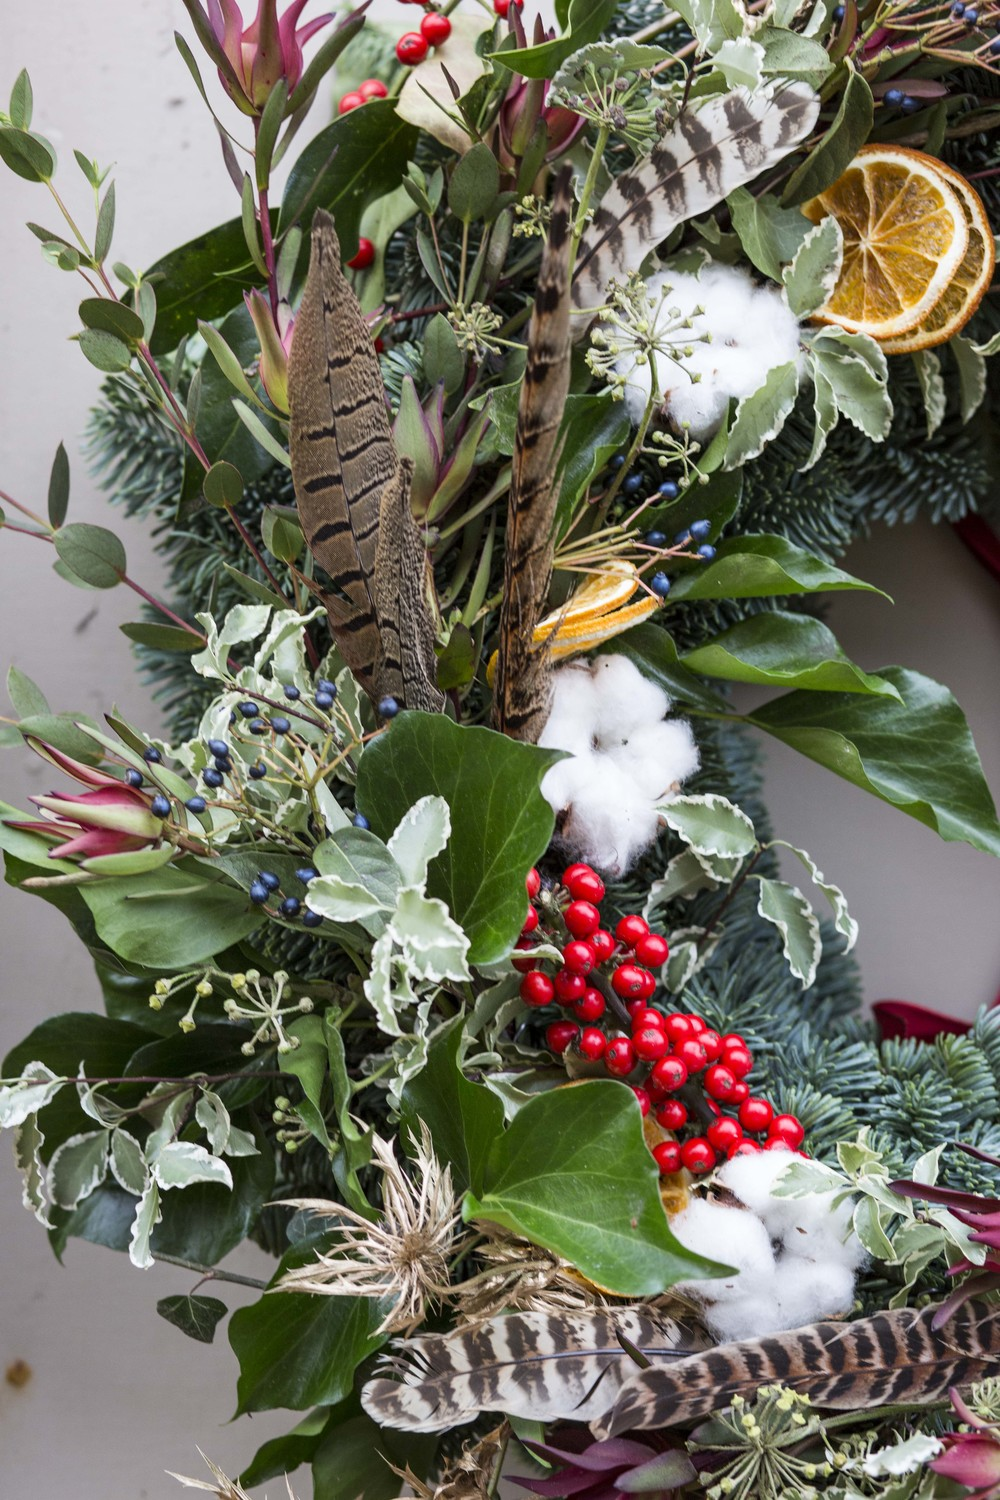 Cotton, Ilex Berries, Pheasent feathers, Thistles, Ivy, Eucalyptus